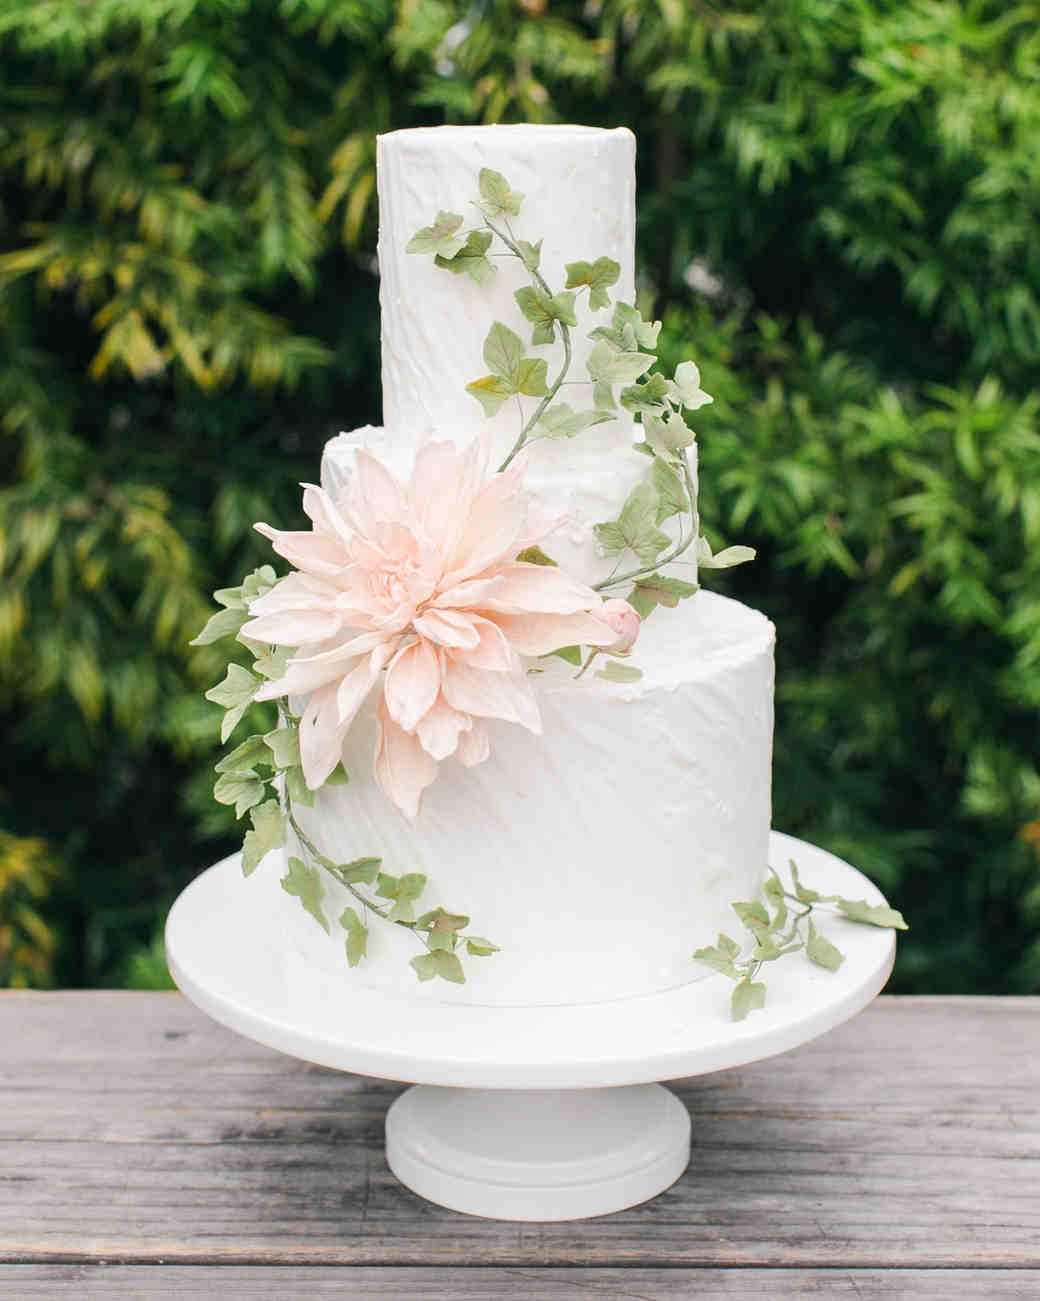 Sugar Flowers For Wedding Cakes  Wedding Cakes with Sugar Flowers That Look Incredibly Real